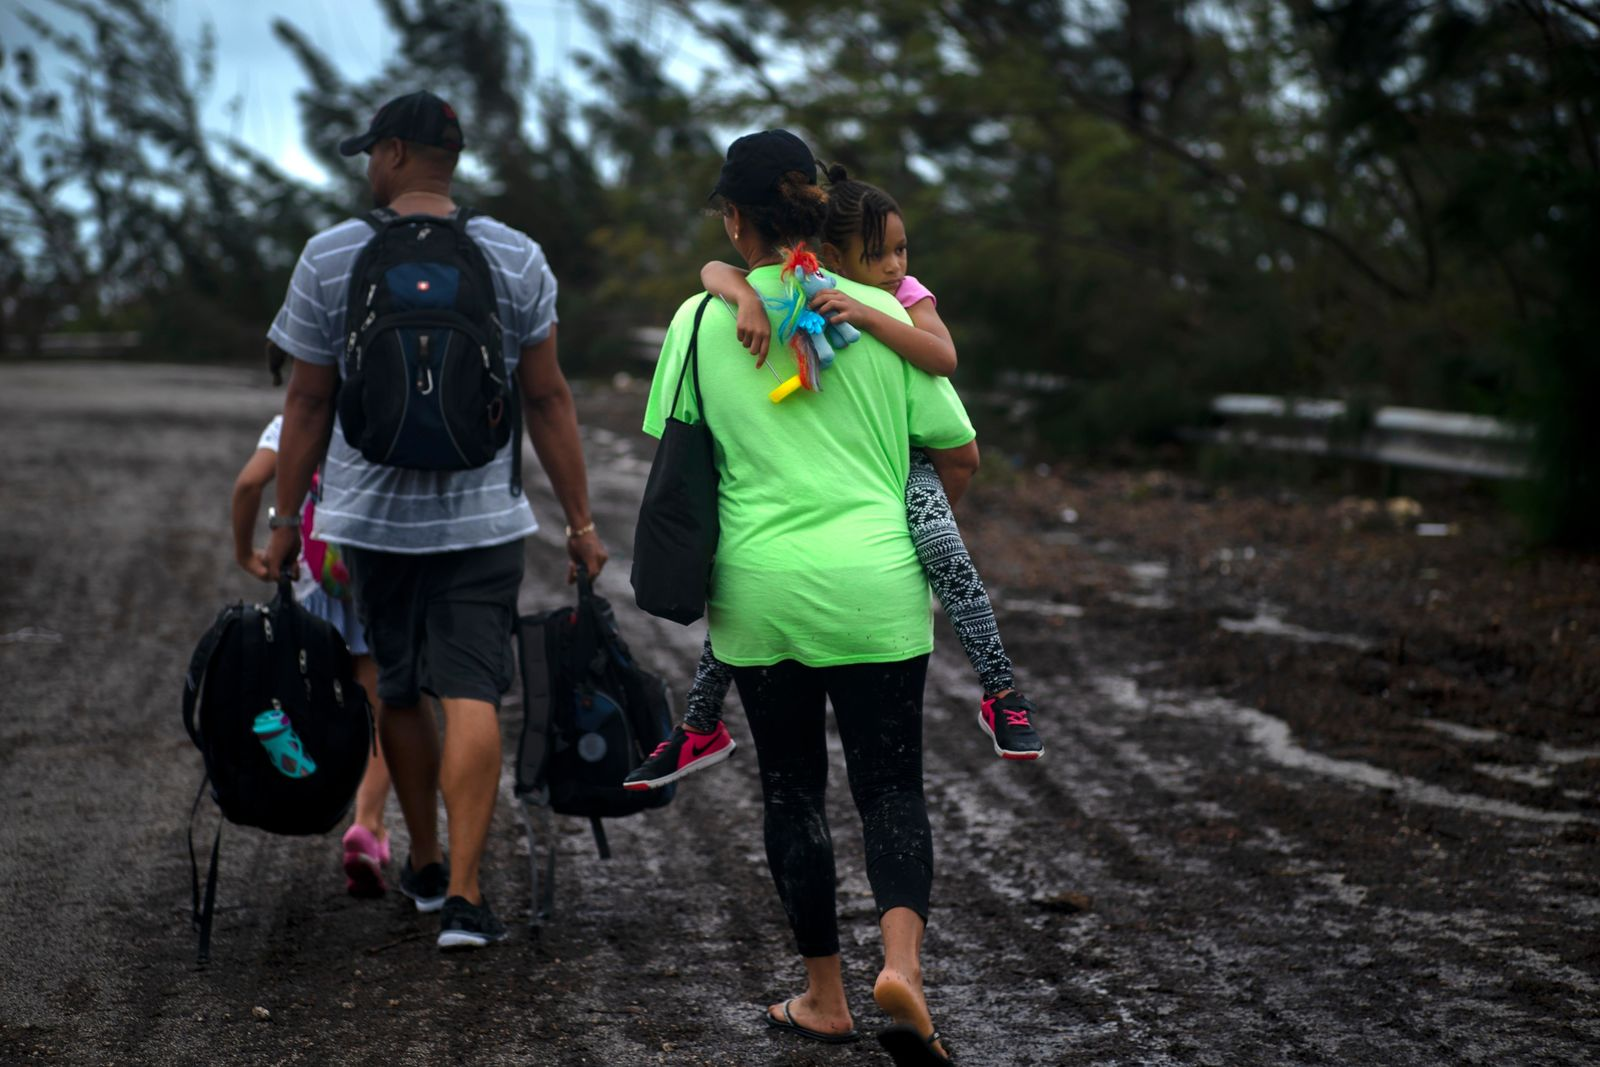 A family walks on a road after being rescued from the flood waters of Hurricane Dorian, near Freeport, Grand Bahama, Bahamas, Tuesday Sept. 3, 2019. They were rescued by volunteers who drove a bus into the flood waters to pick them up. (AP Photo/Ramon Espinosa)